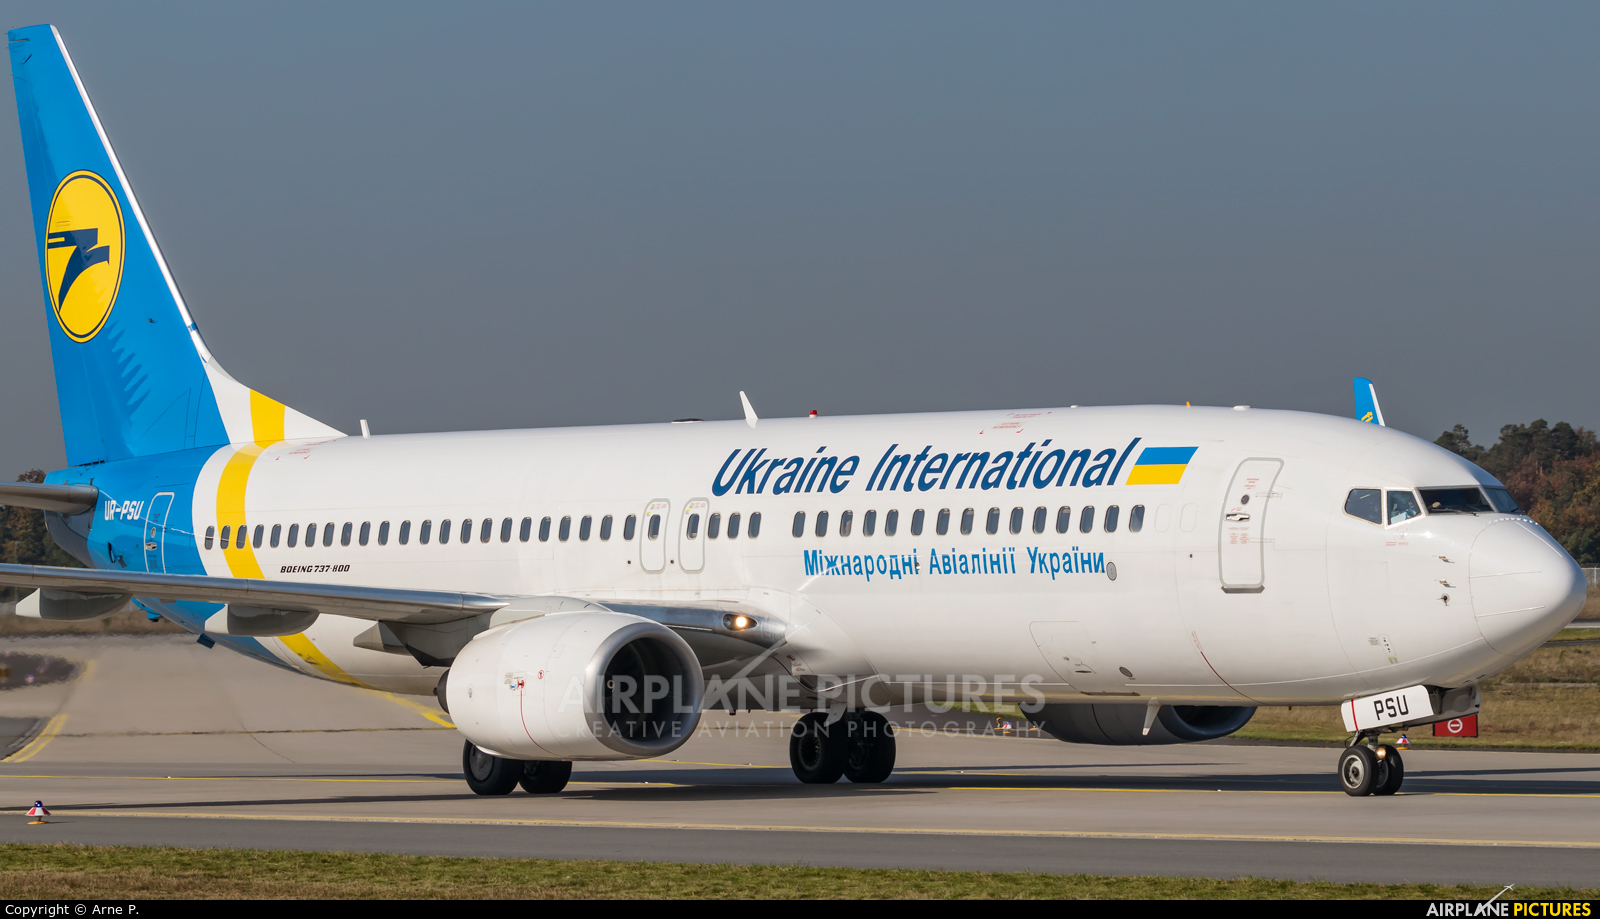 Ukraine International Airlines UR-PSU aircraft at Frankfurt